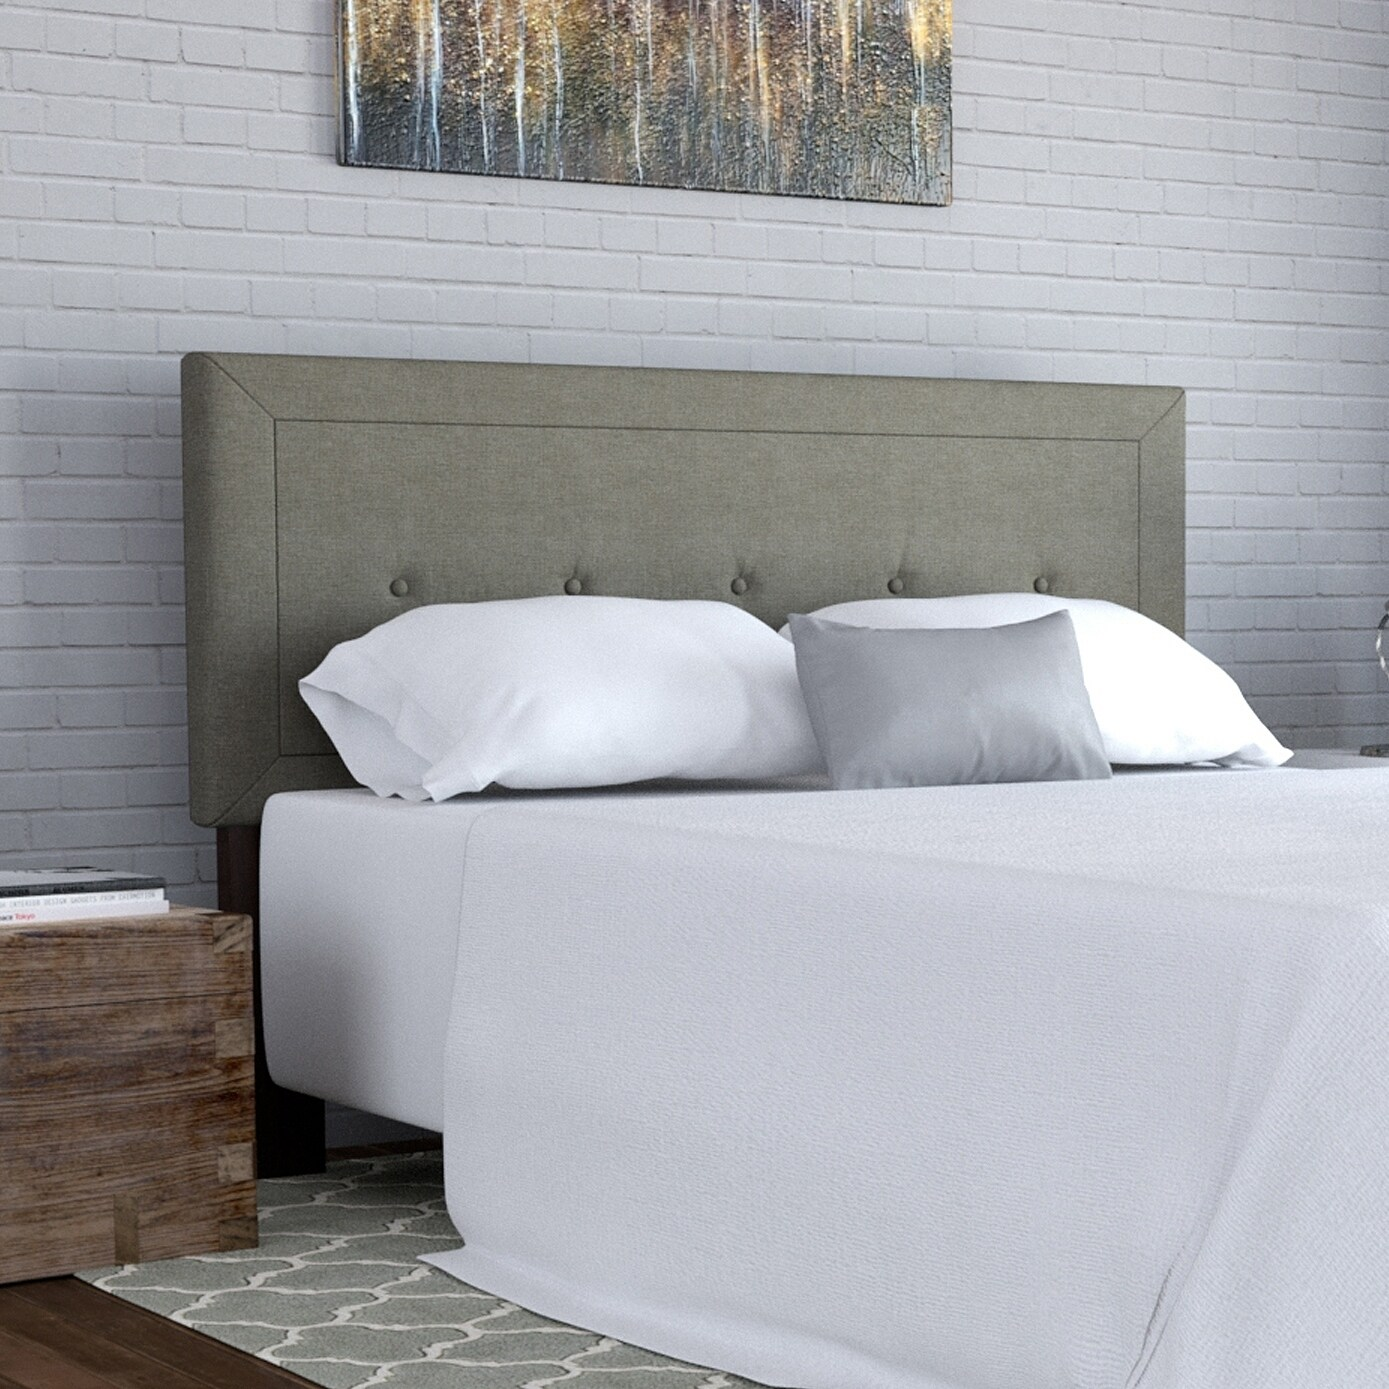 Superbe Details About Handy Living Kaylee Grey Button Tufted Upholstered Queen  Headboard